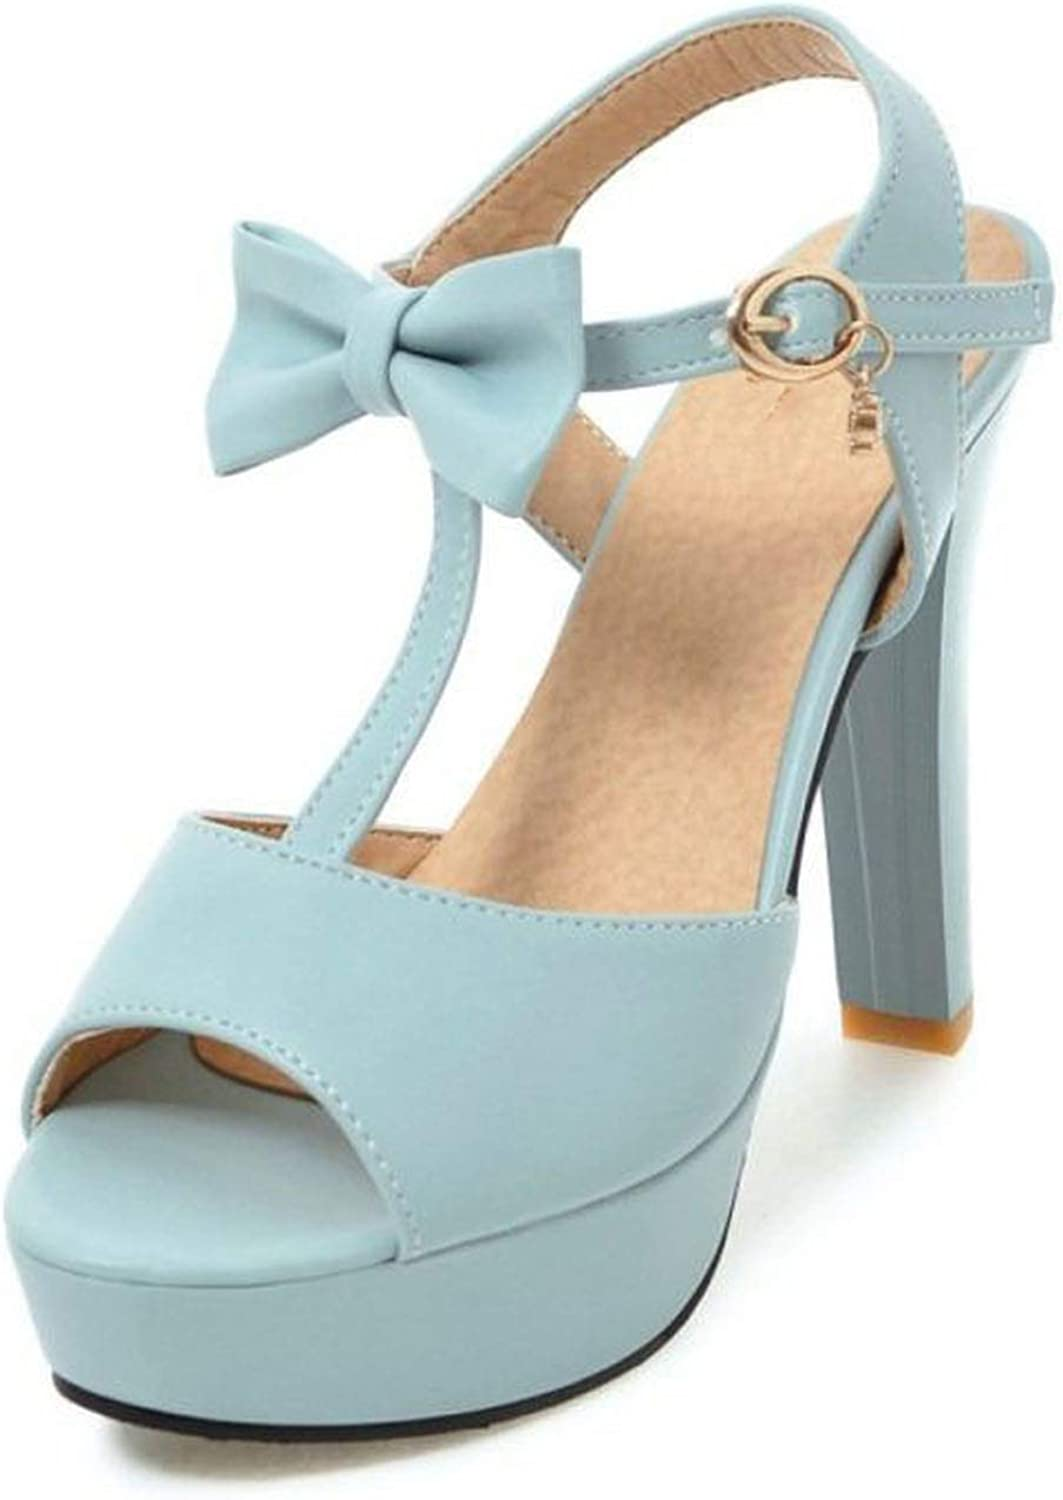 High Heels Sandals Open Toe shoes Women Bowknot T Strap Daily Sandals Platform Lady Sexy shoes